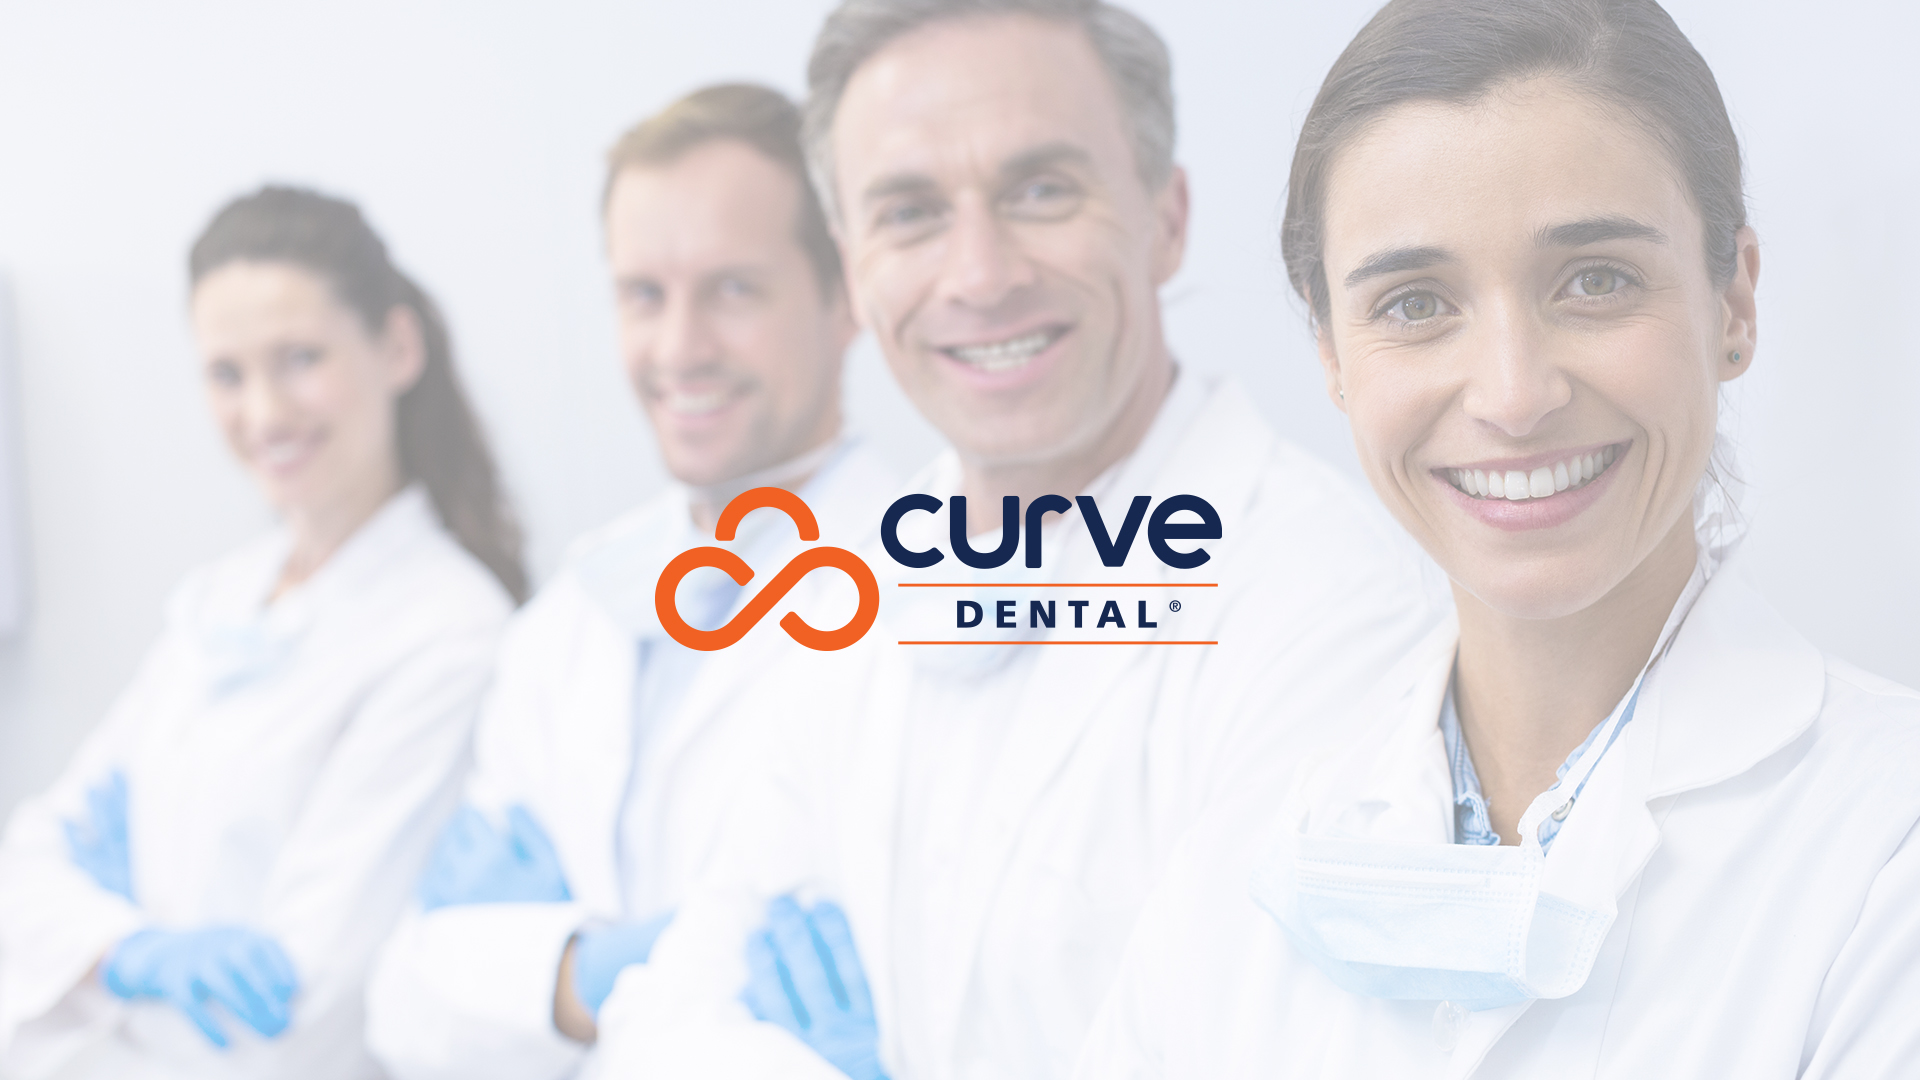 See Curve Dental's practice management software in action